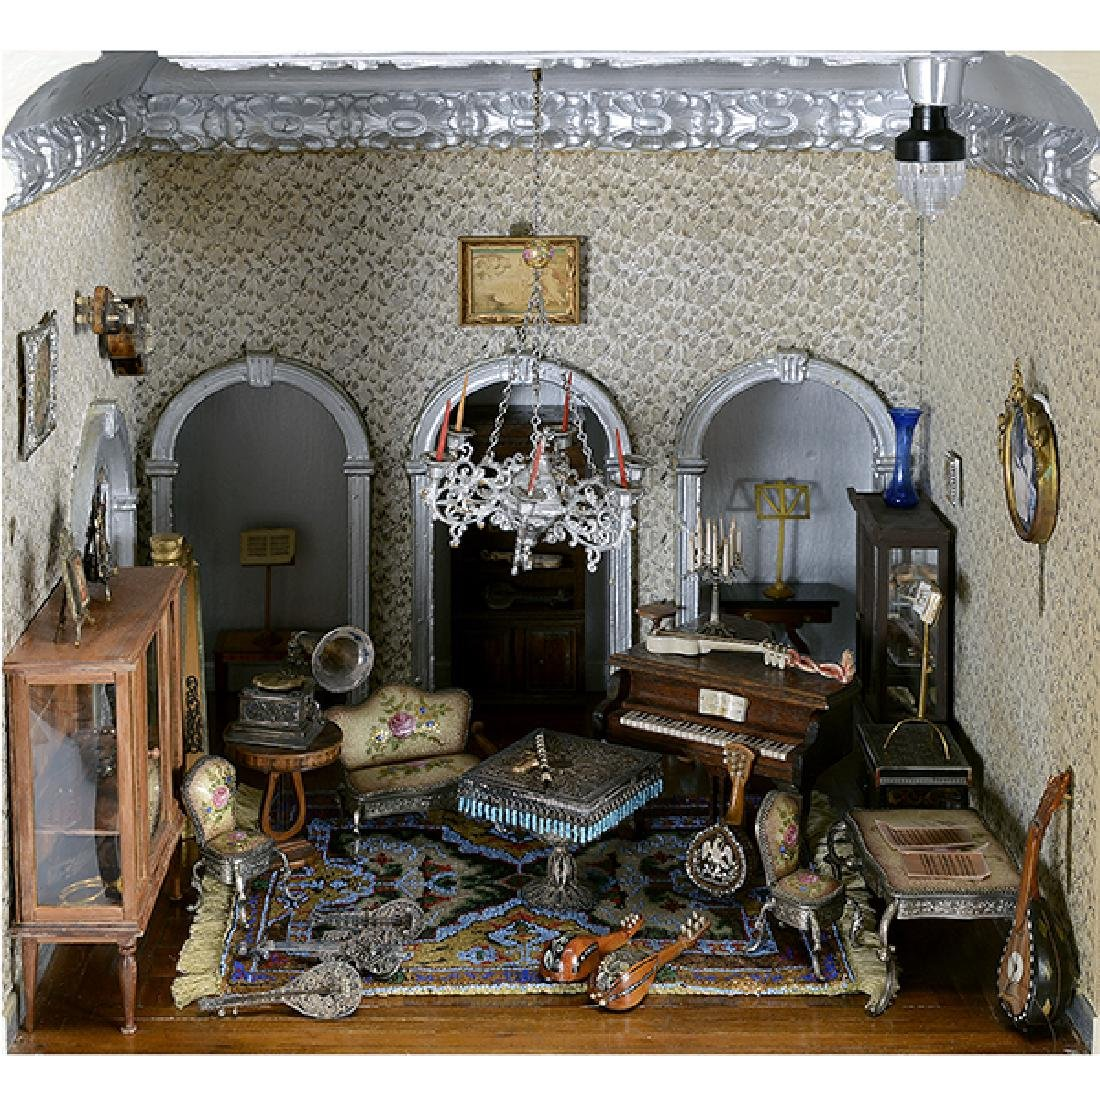 Contents of Music Room and Upstairs Hallway, Mother